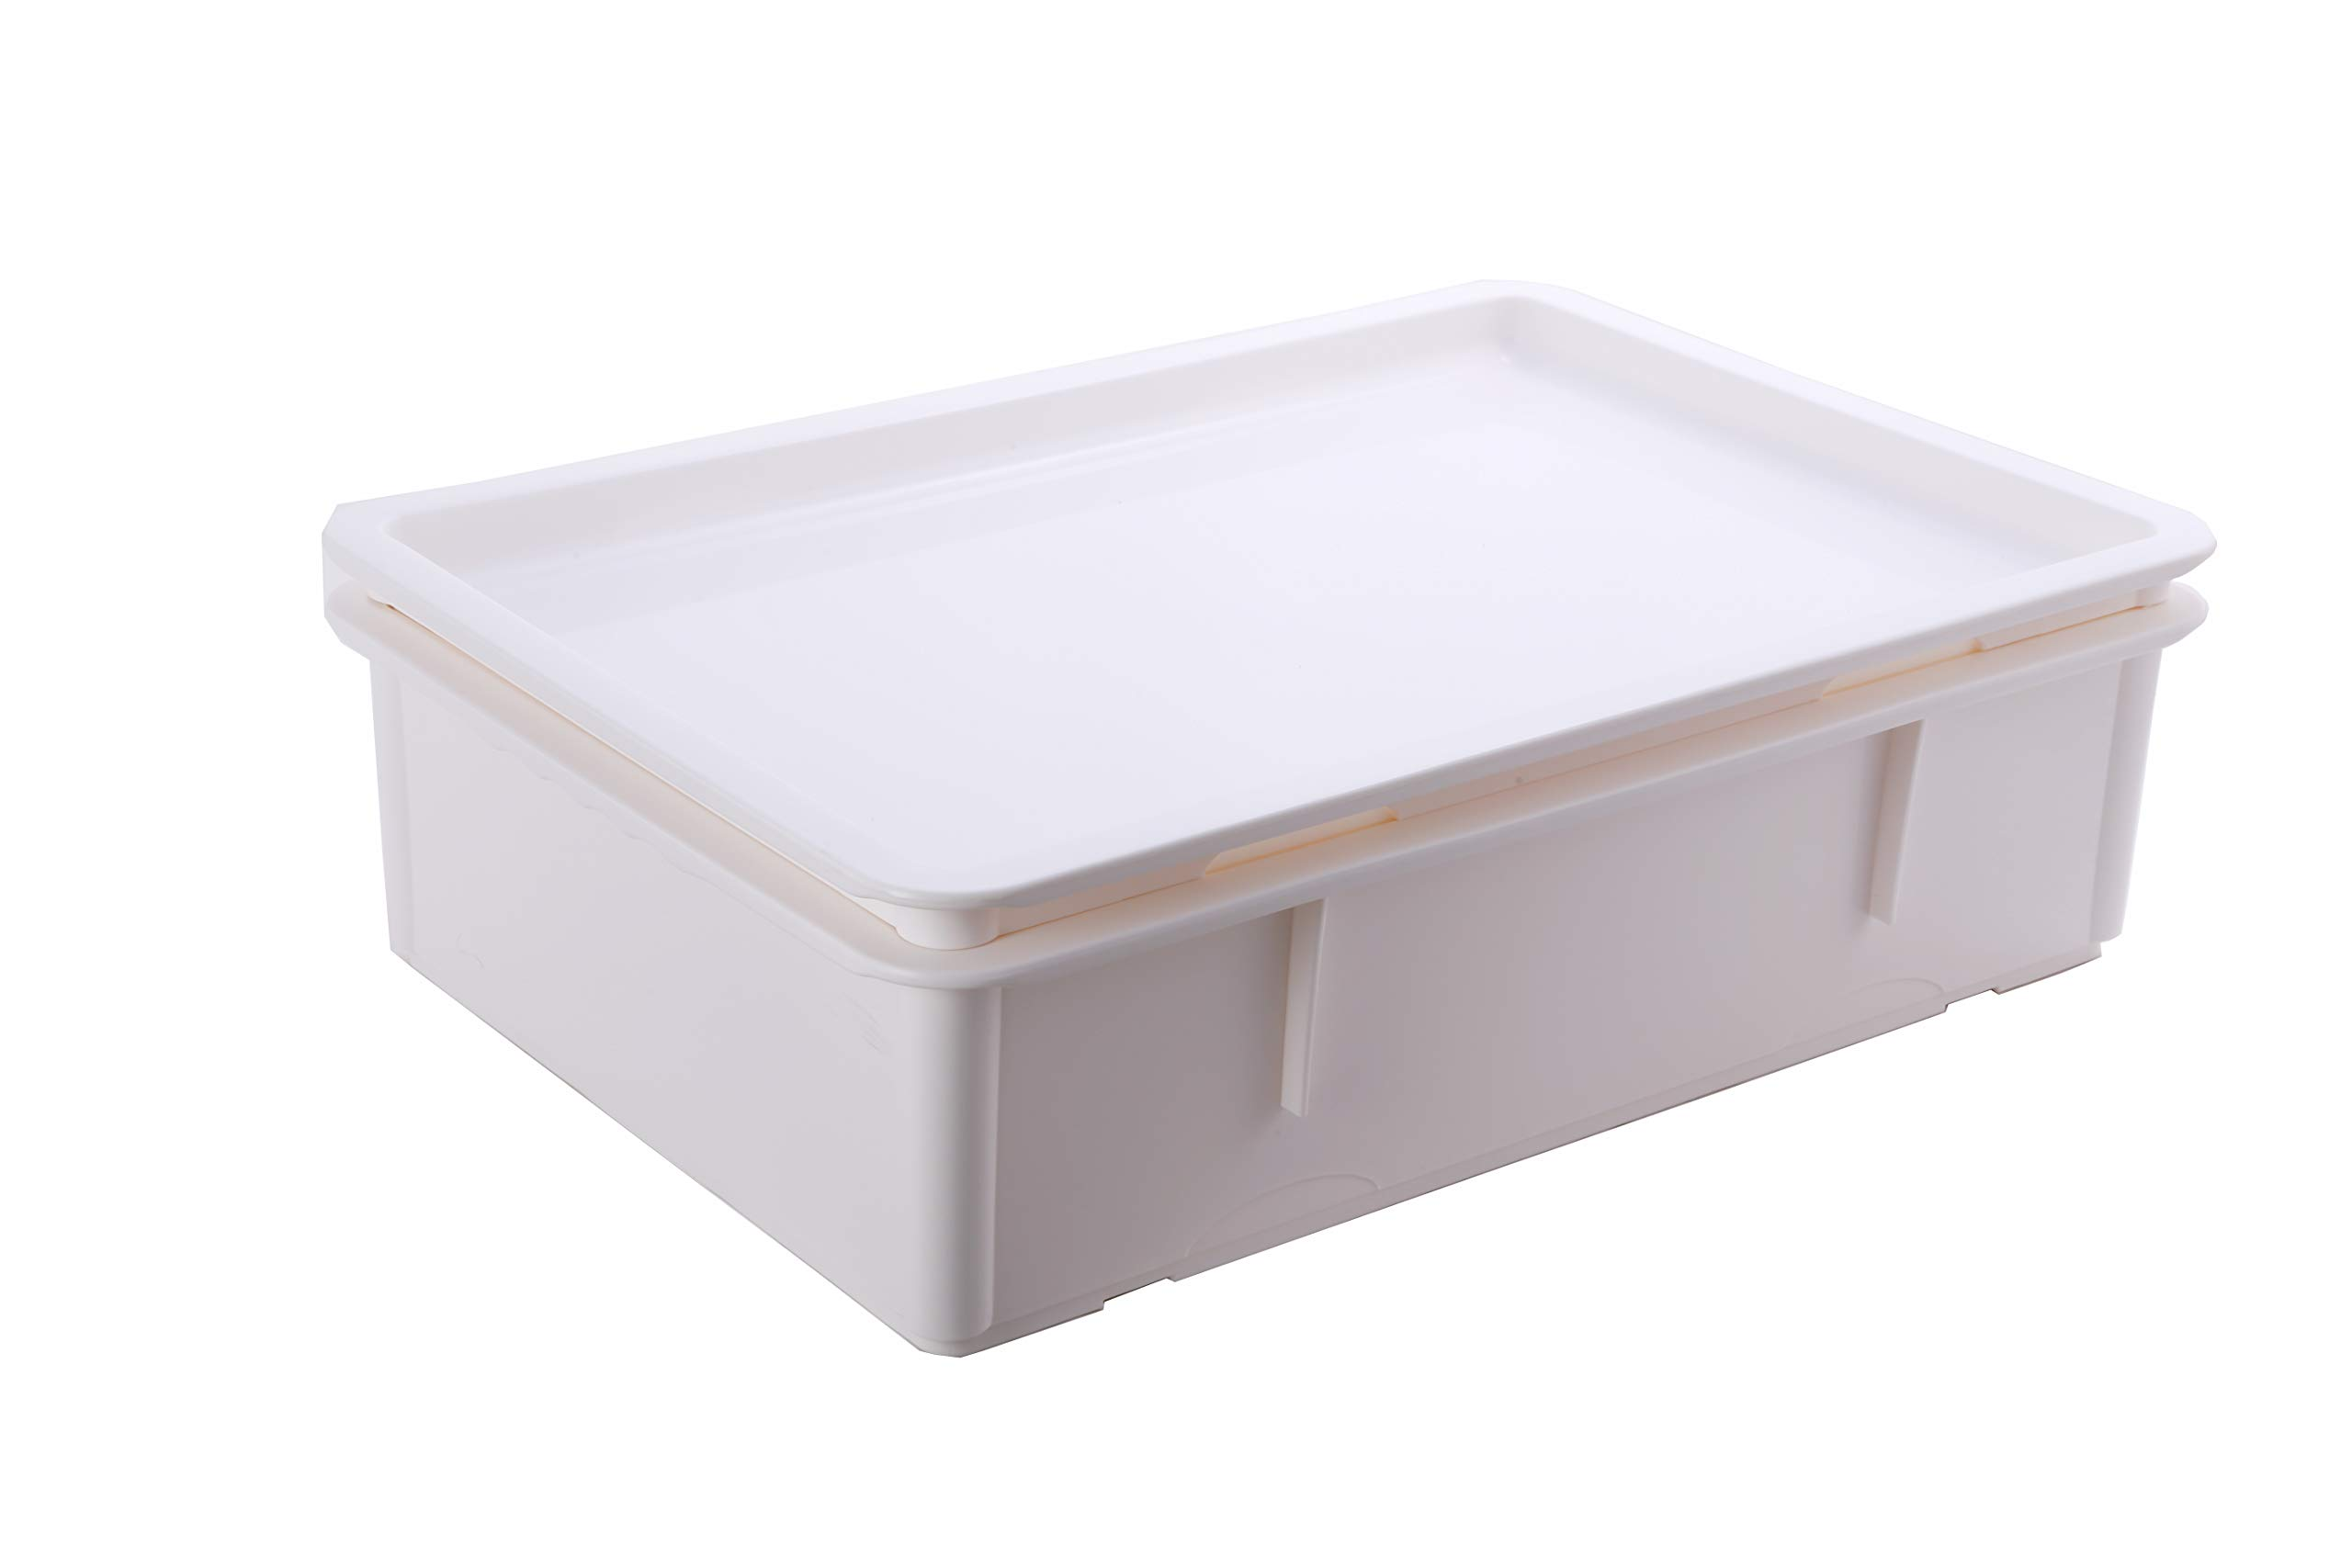 Hakka Commercial Stackable Pizza Dough Container&Dough Srorage Box with Cover